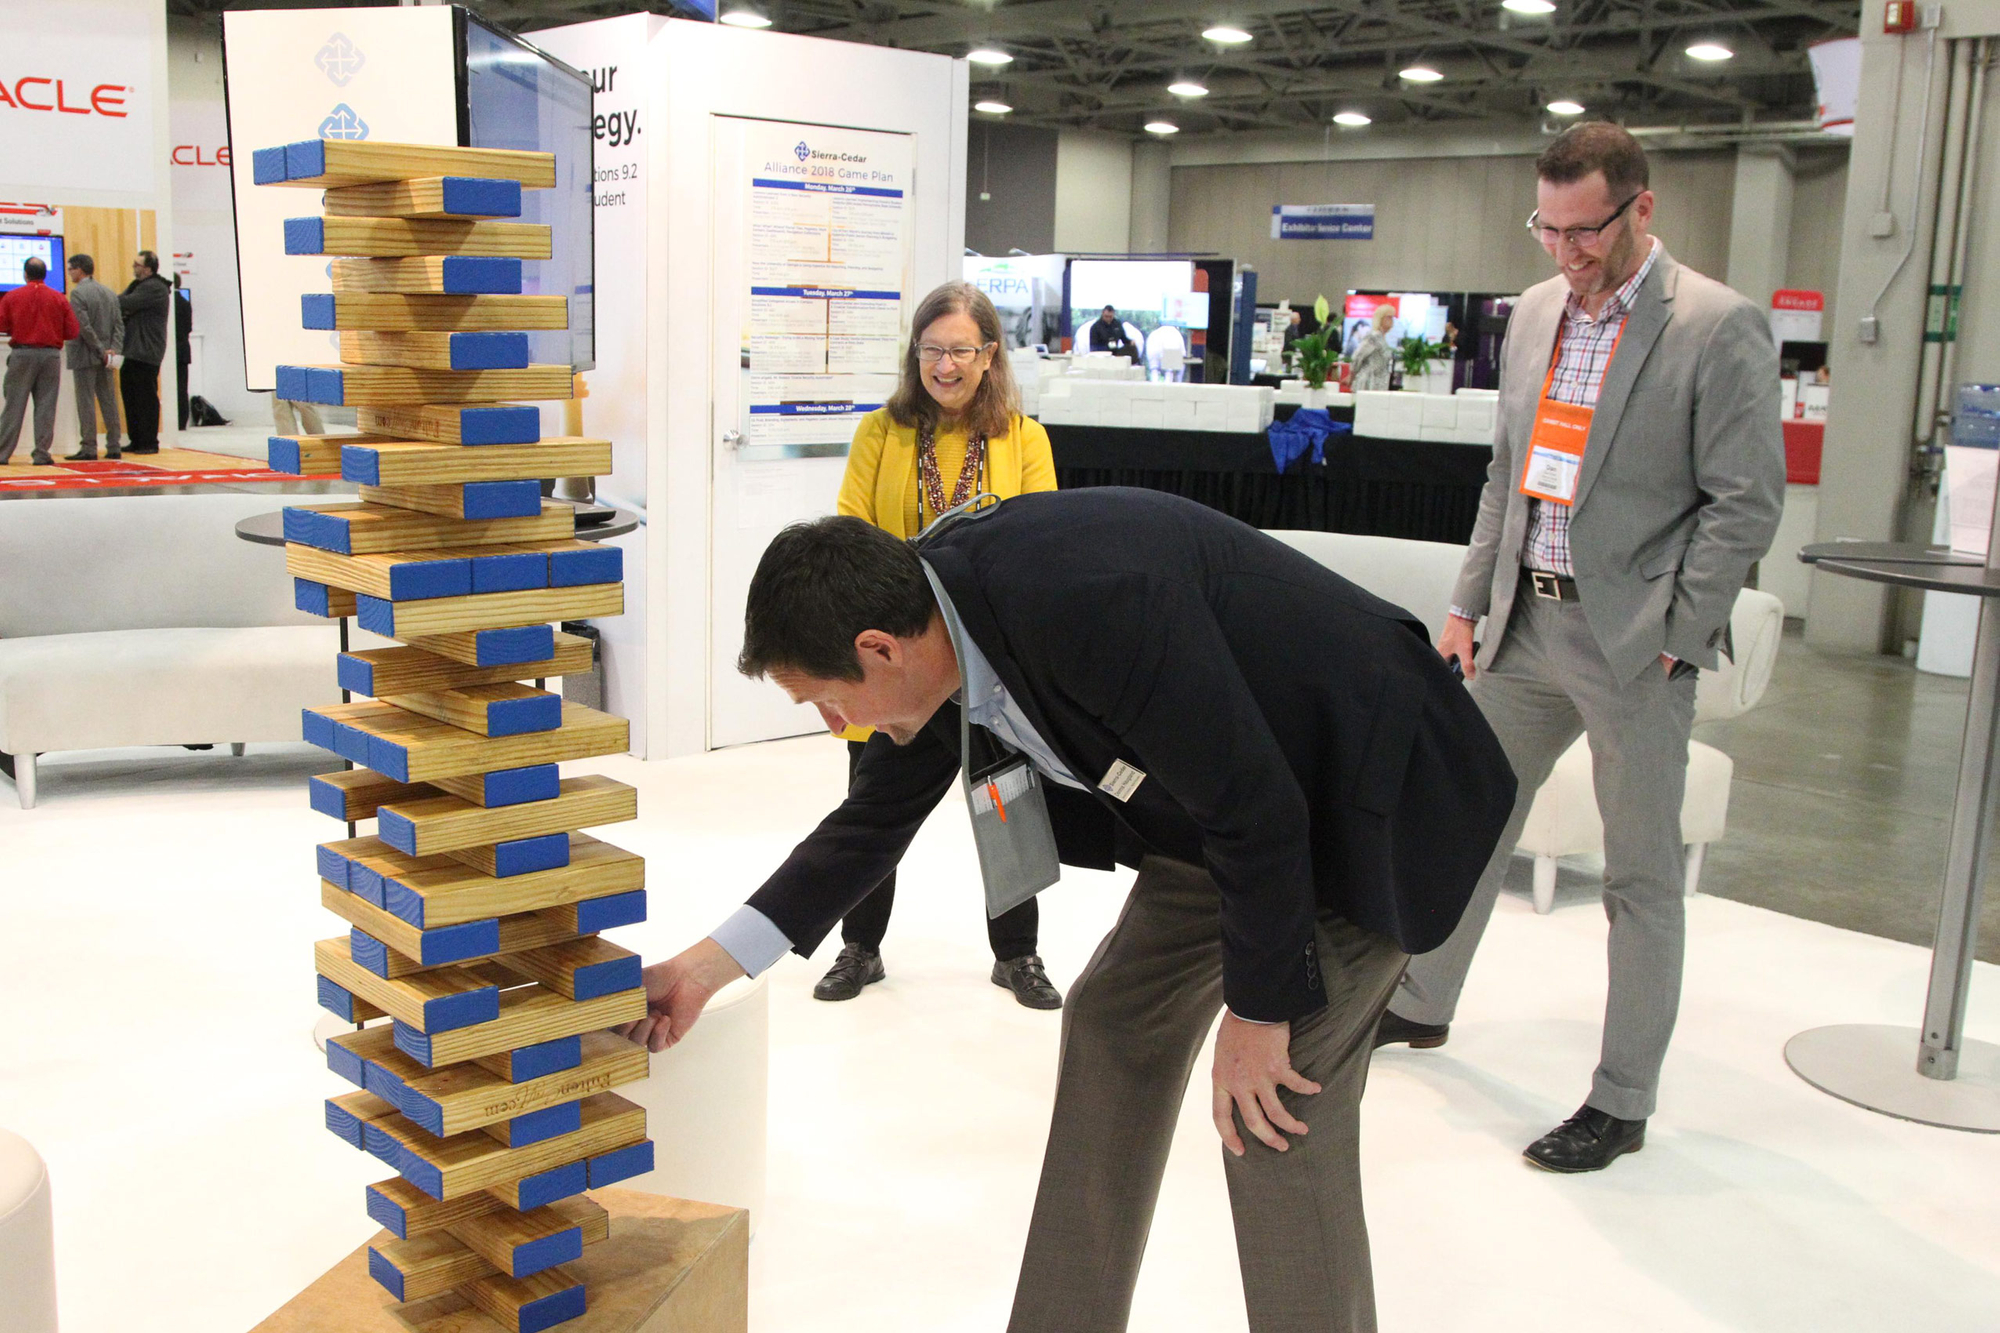 Higher_Education_User_Group_2018_Salt_Palace_Convention_Center_Exhibitor_Area_Giant_Jenga!.jpg